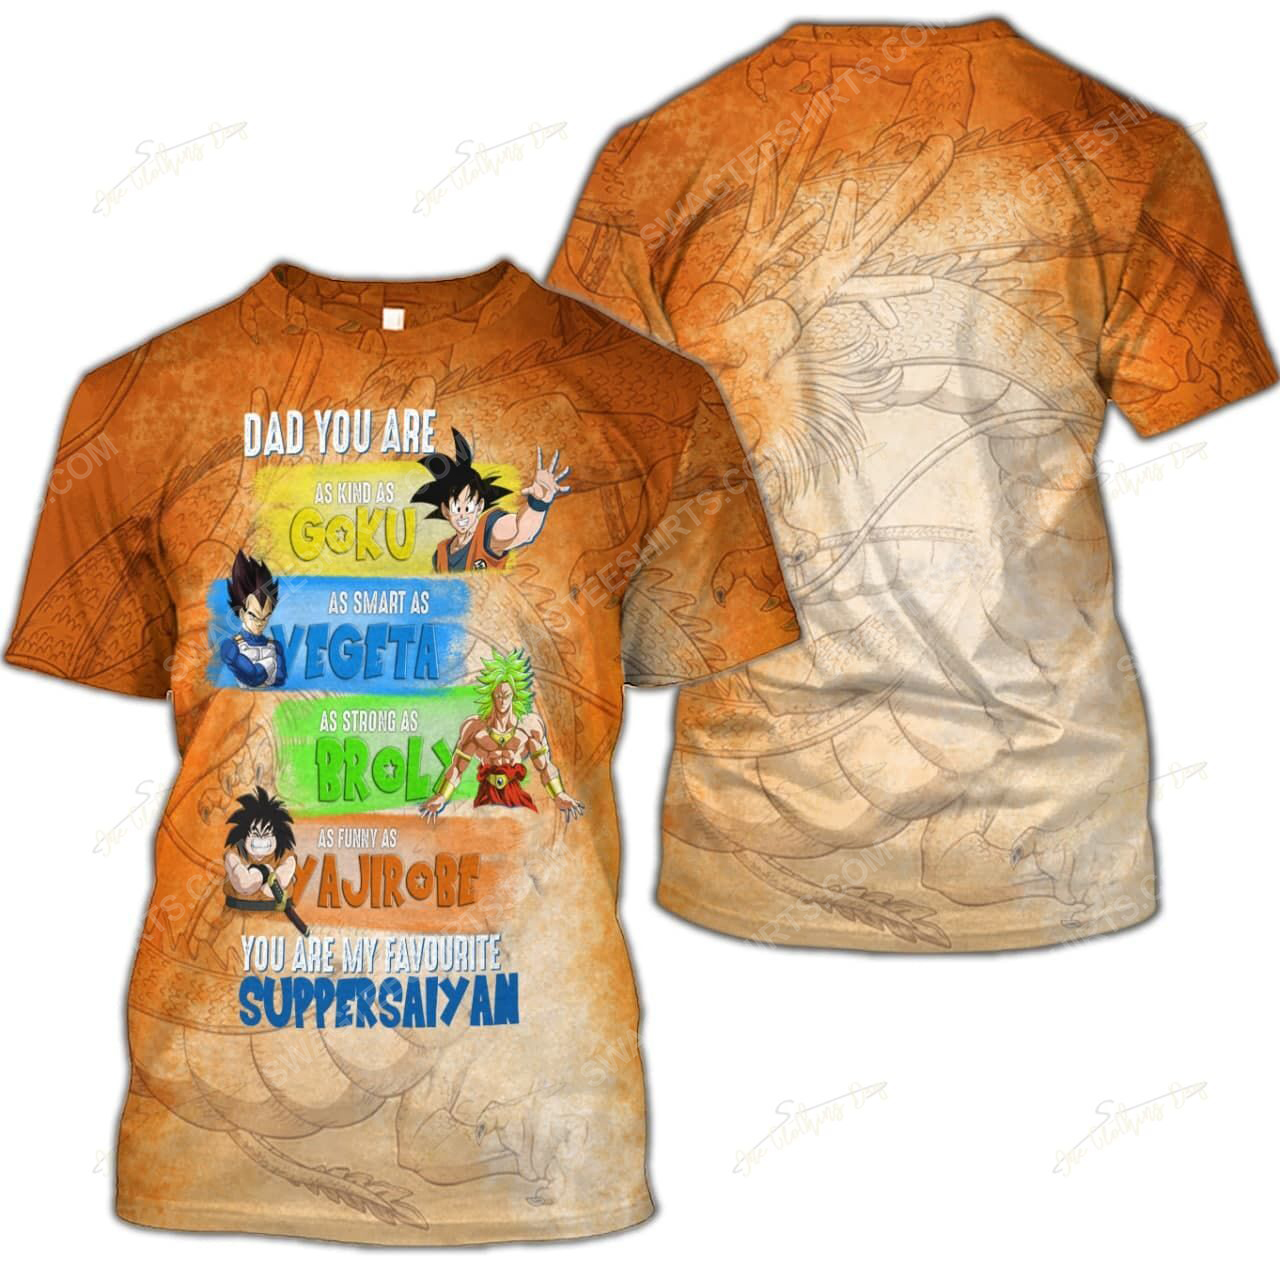 Fathers day dad you are as kind as goku dragon ball z shirt 3(1)